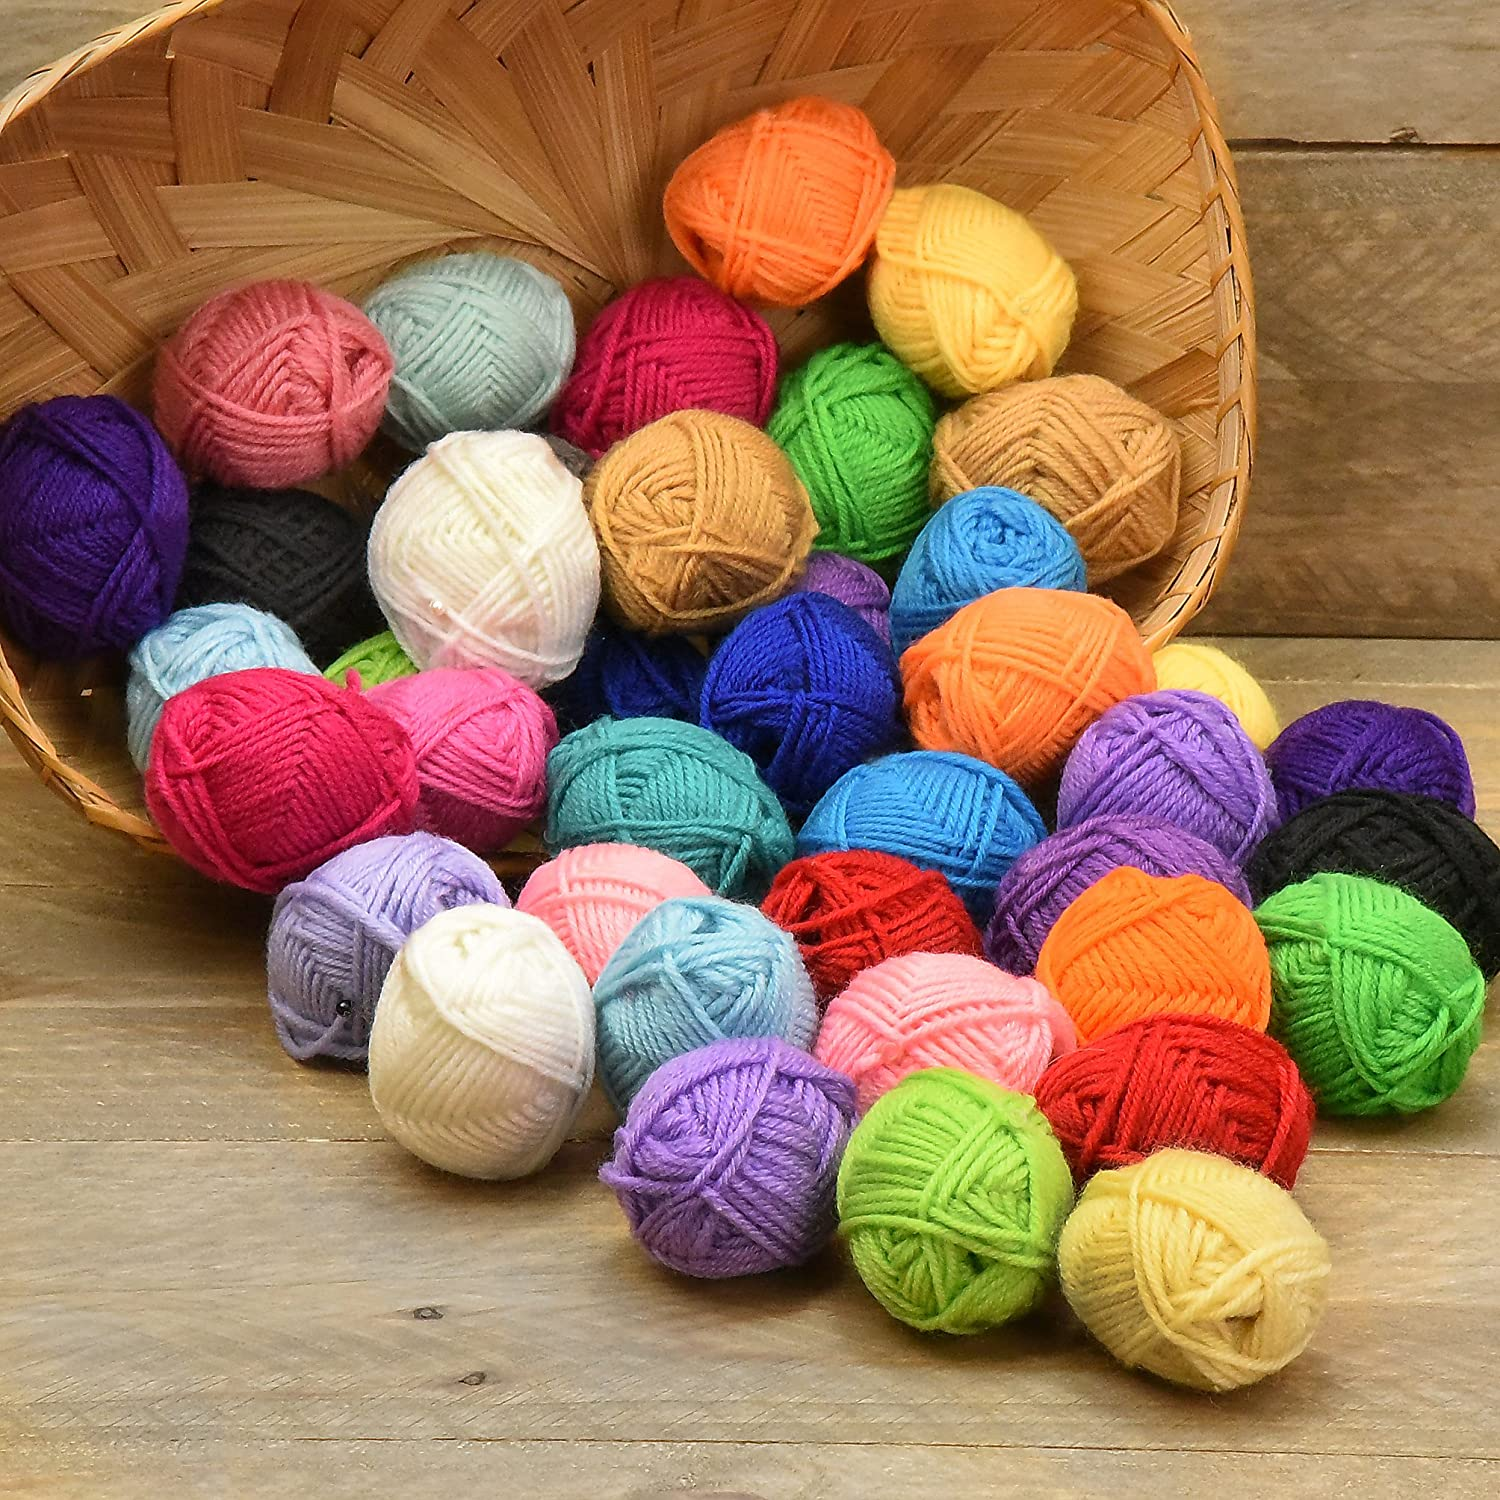 40 Skein of Yarns for your crochet project available at AMAZON